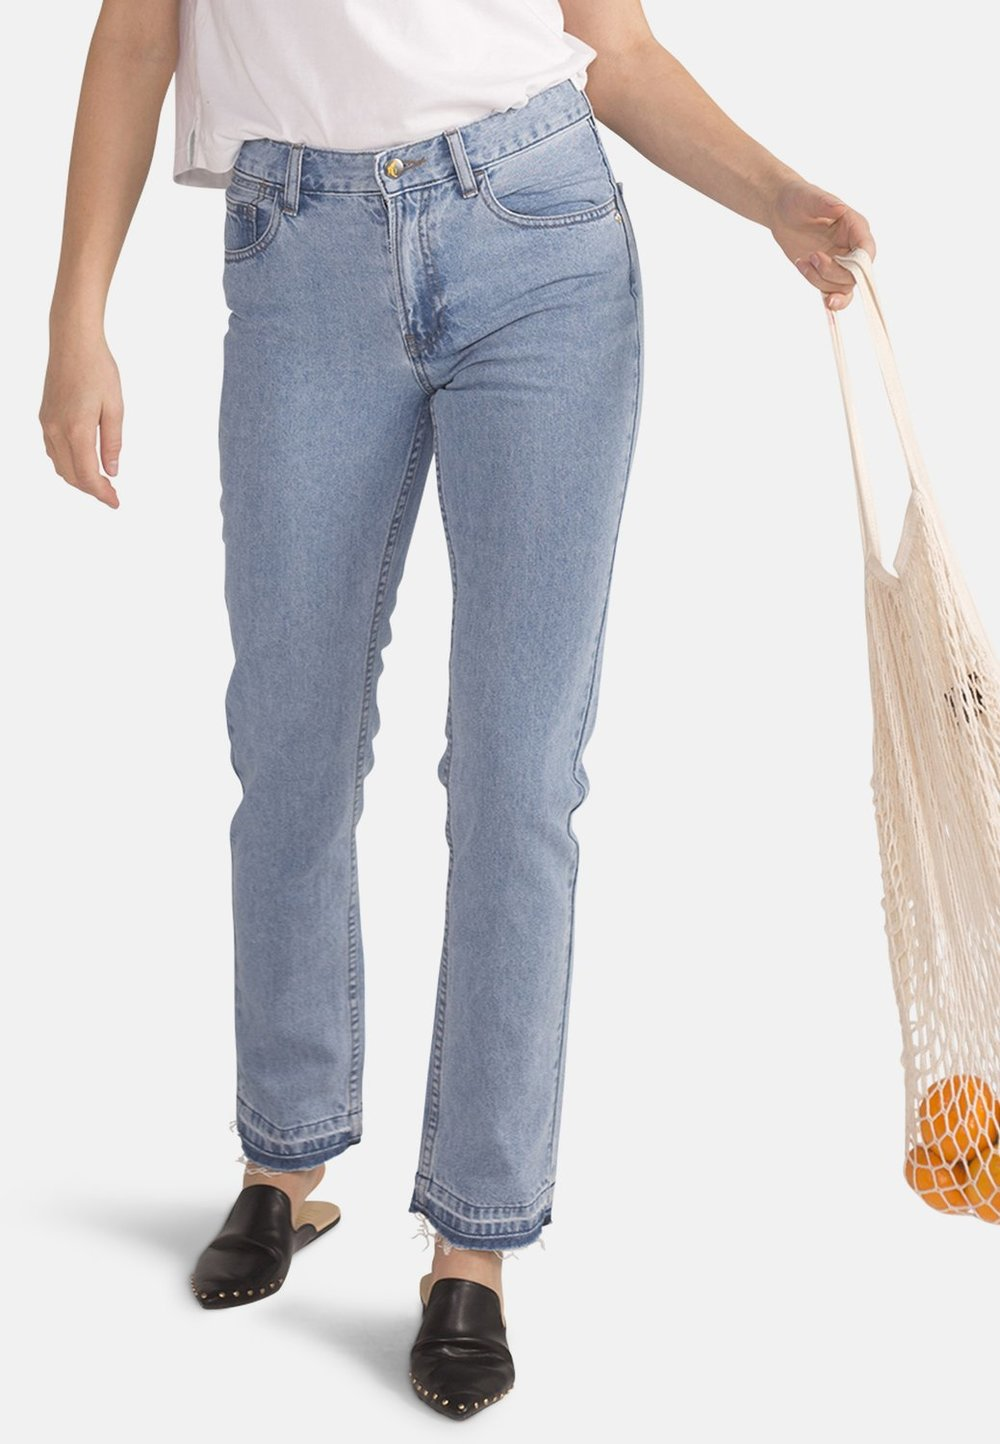 Ethical Denim Brands